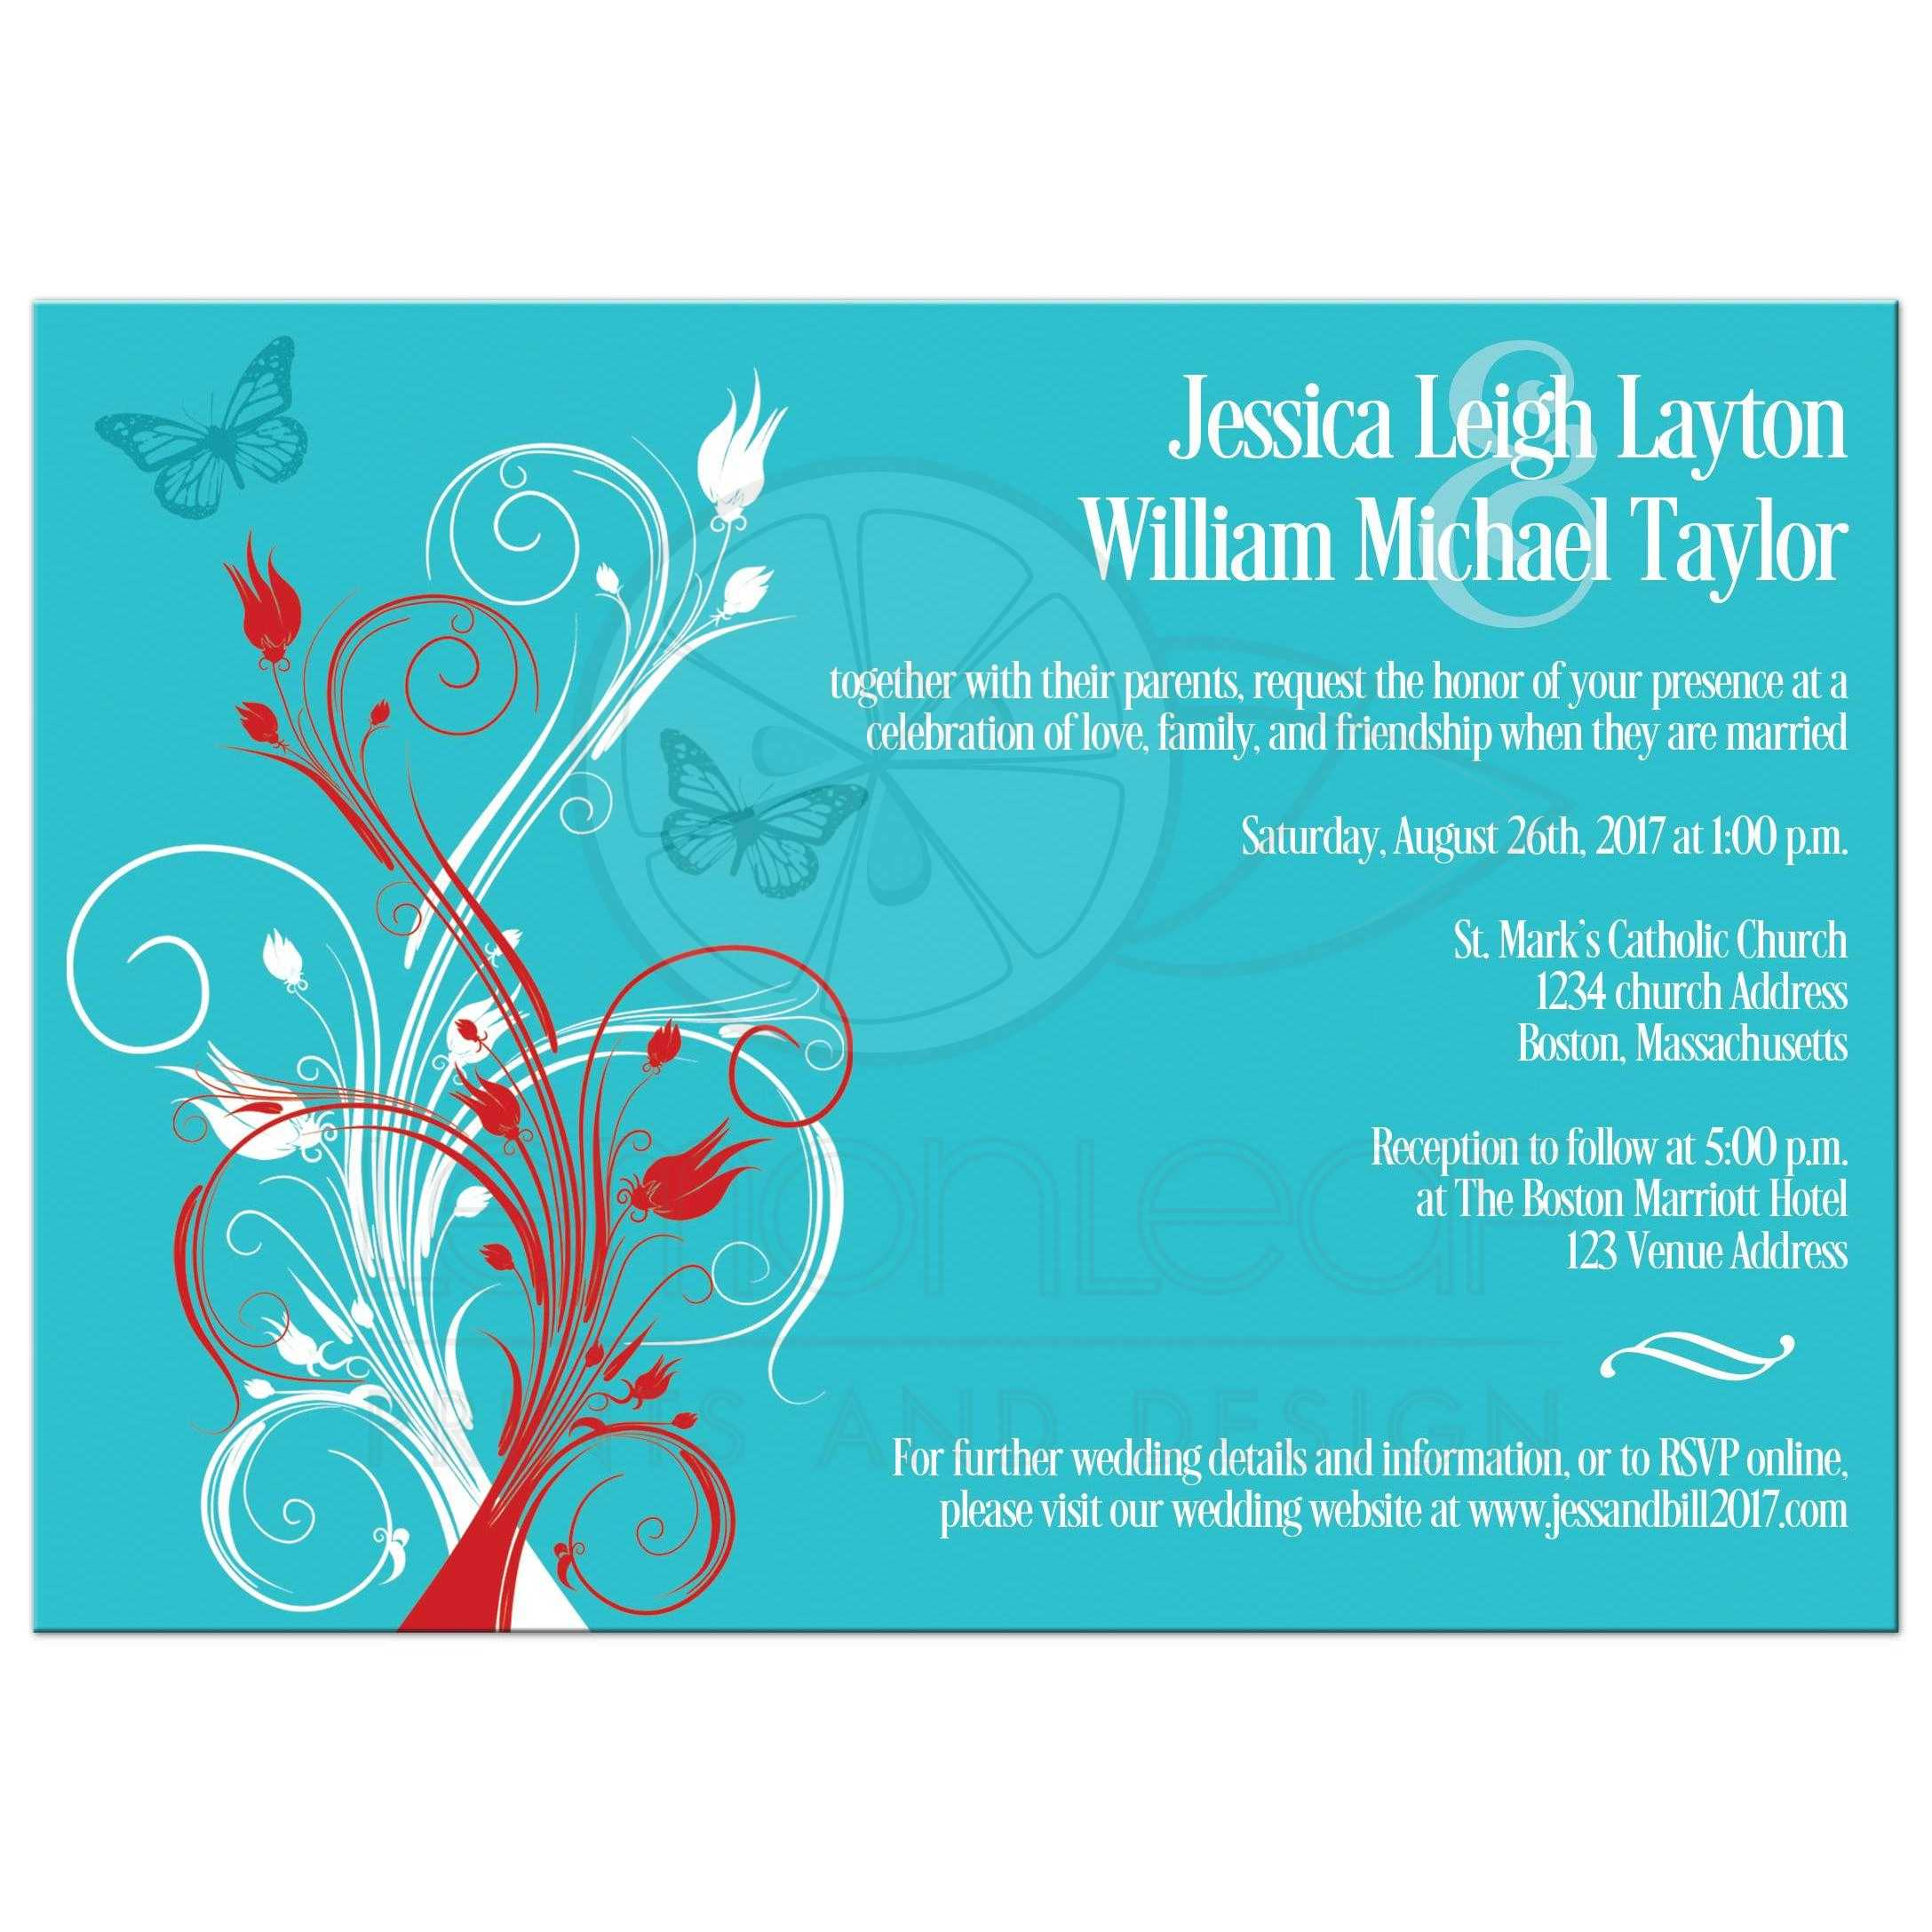 Wedding Invitation | Turquoise, Red, White Floral, Butterflies